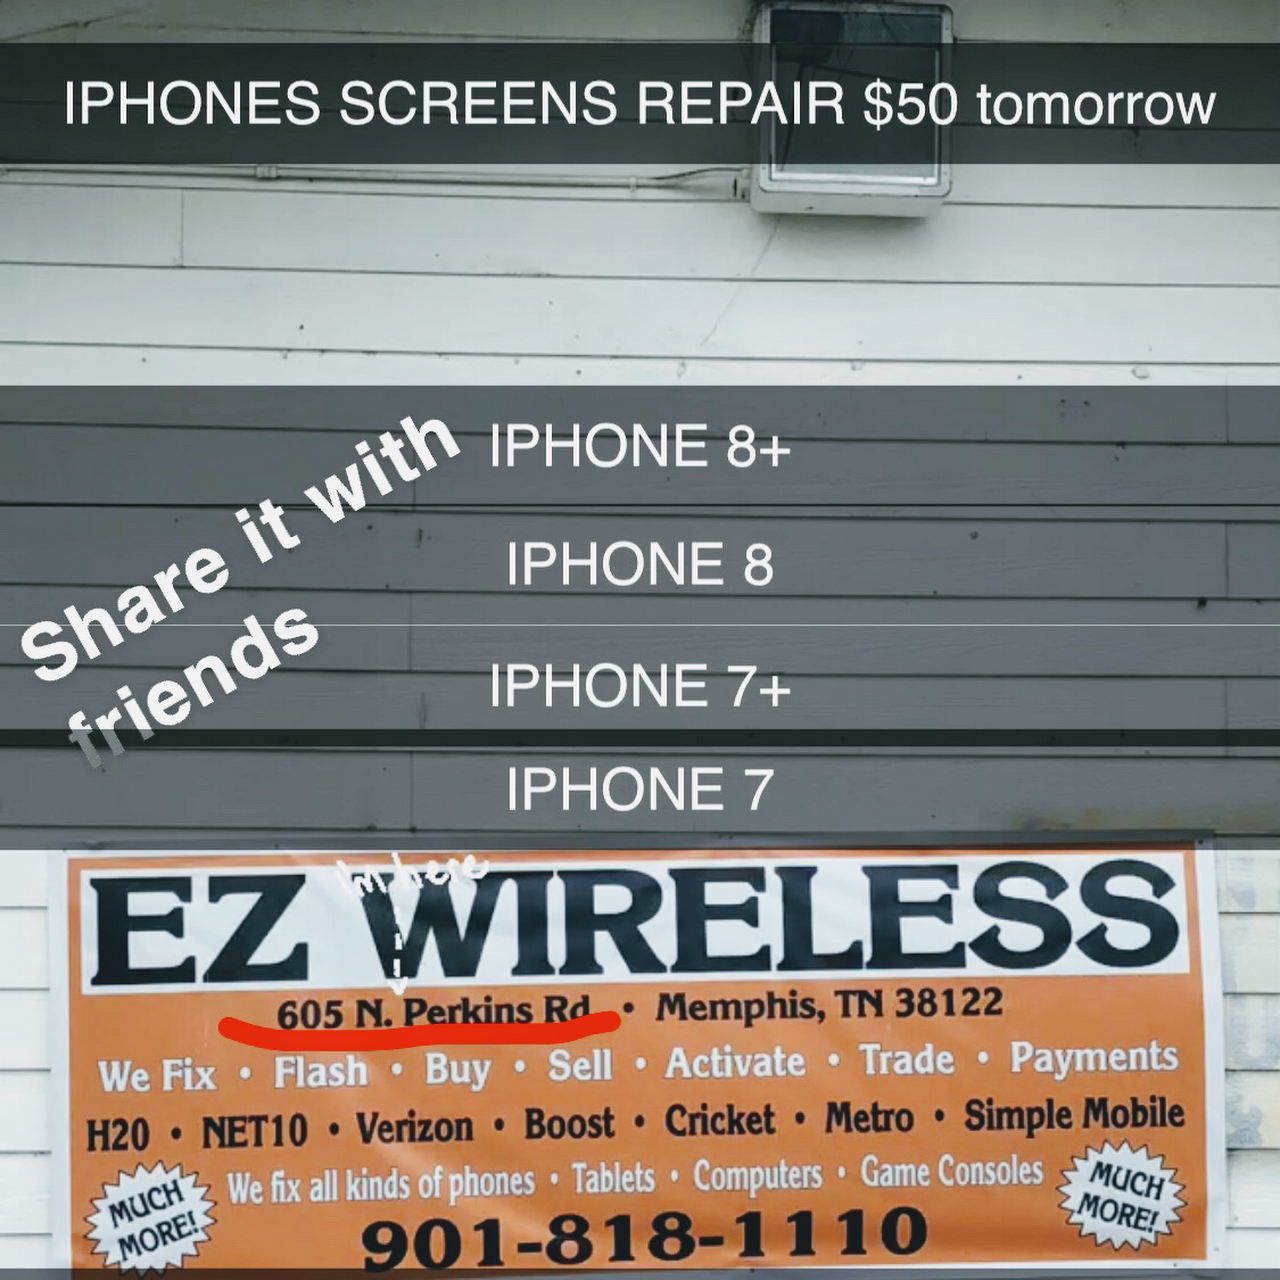 E Z Wireless - PHONES AND ELECTRONIC REPAIR